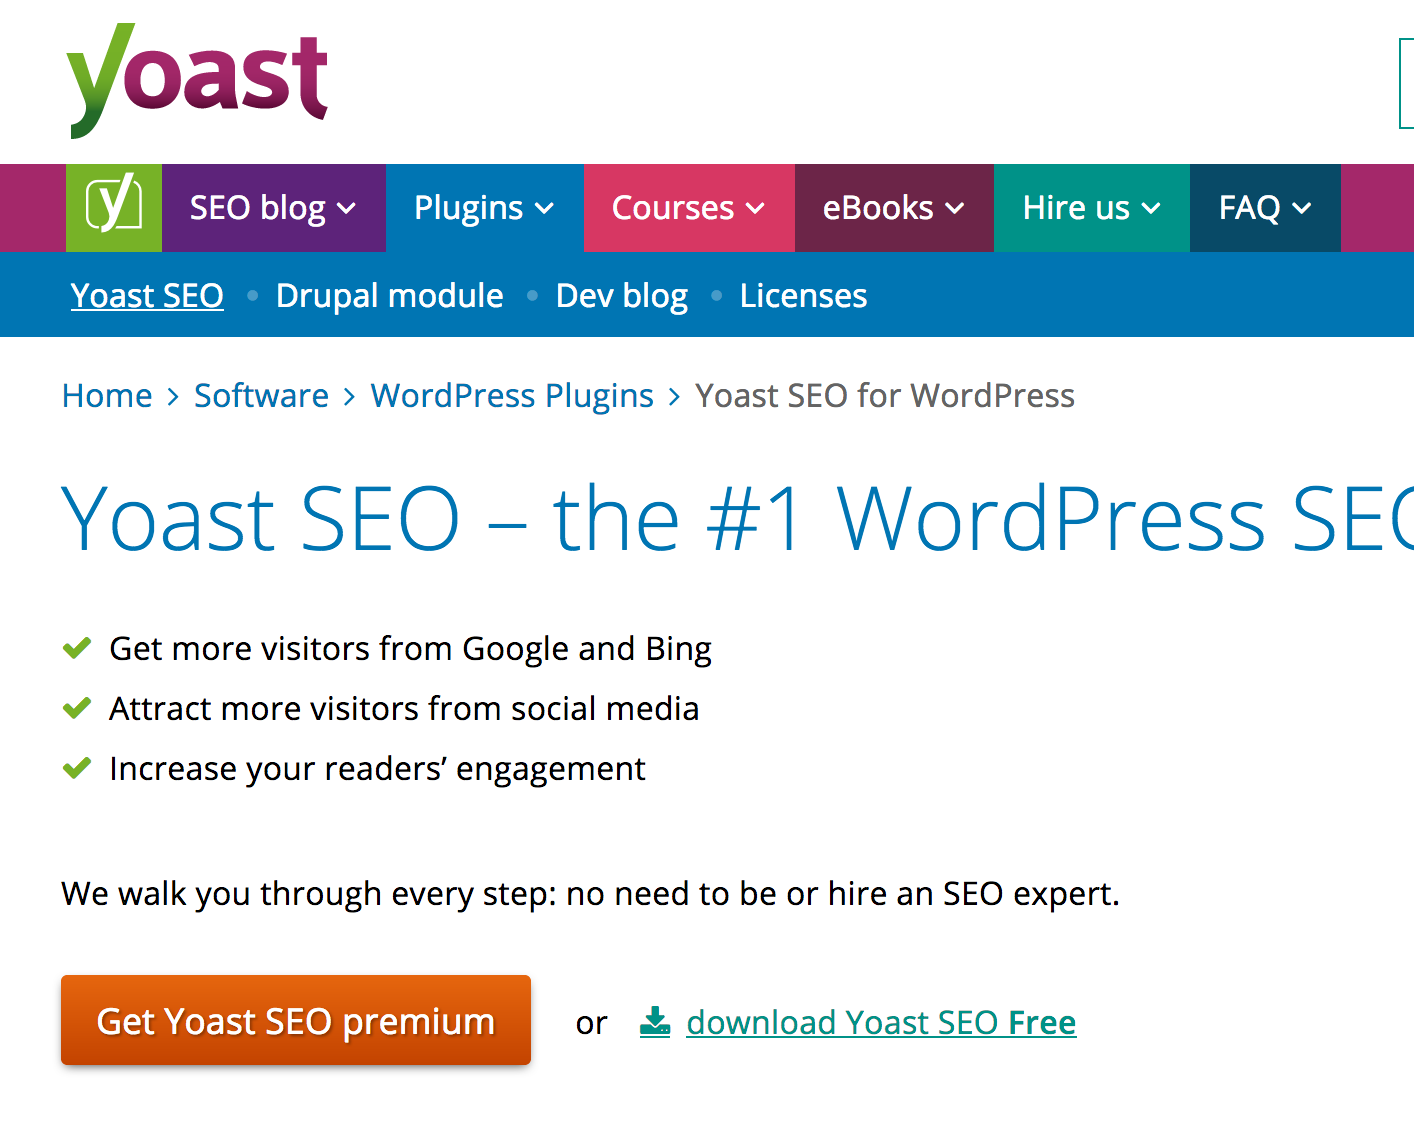 Should My Mortgage Website Have Yoast SEO Premium?